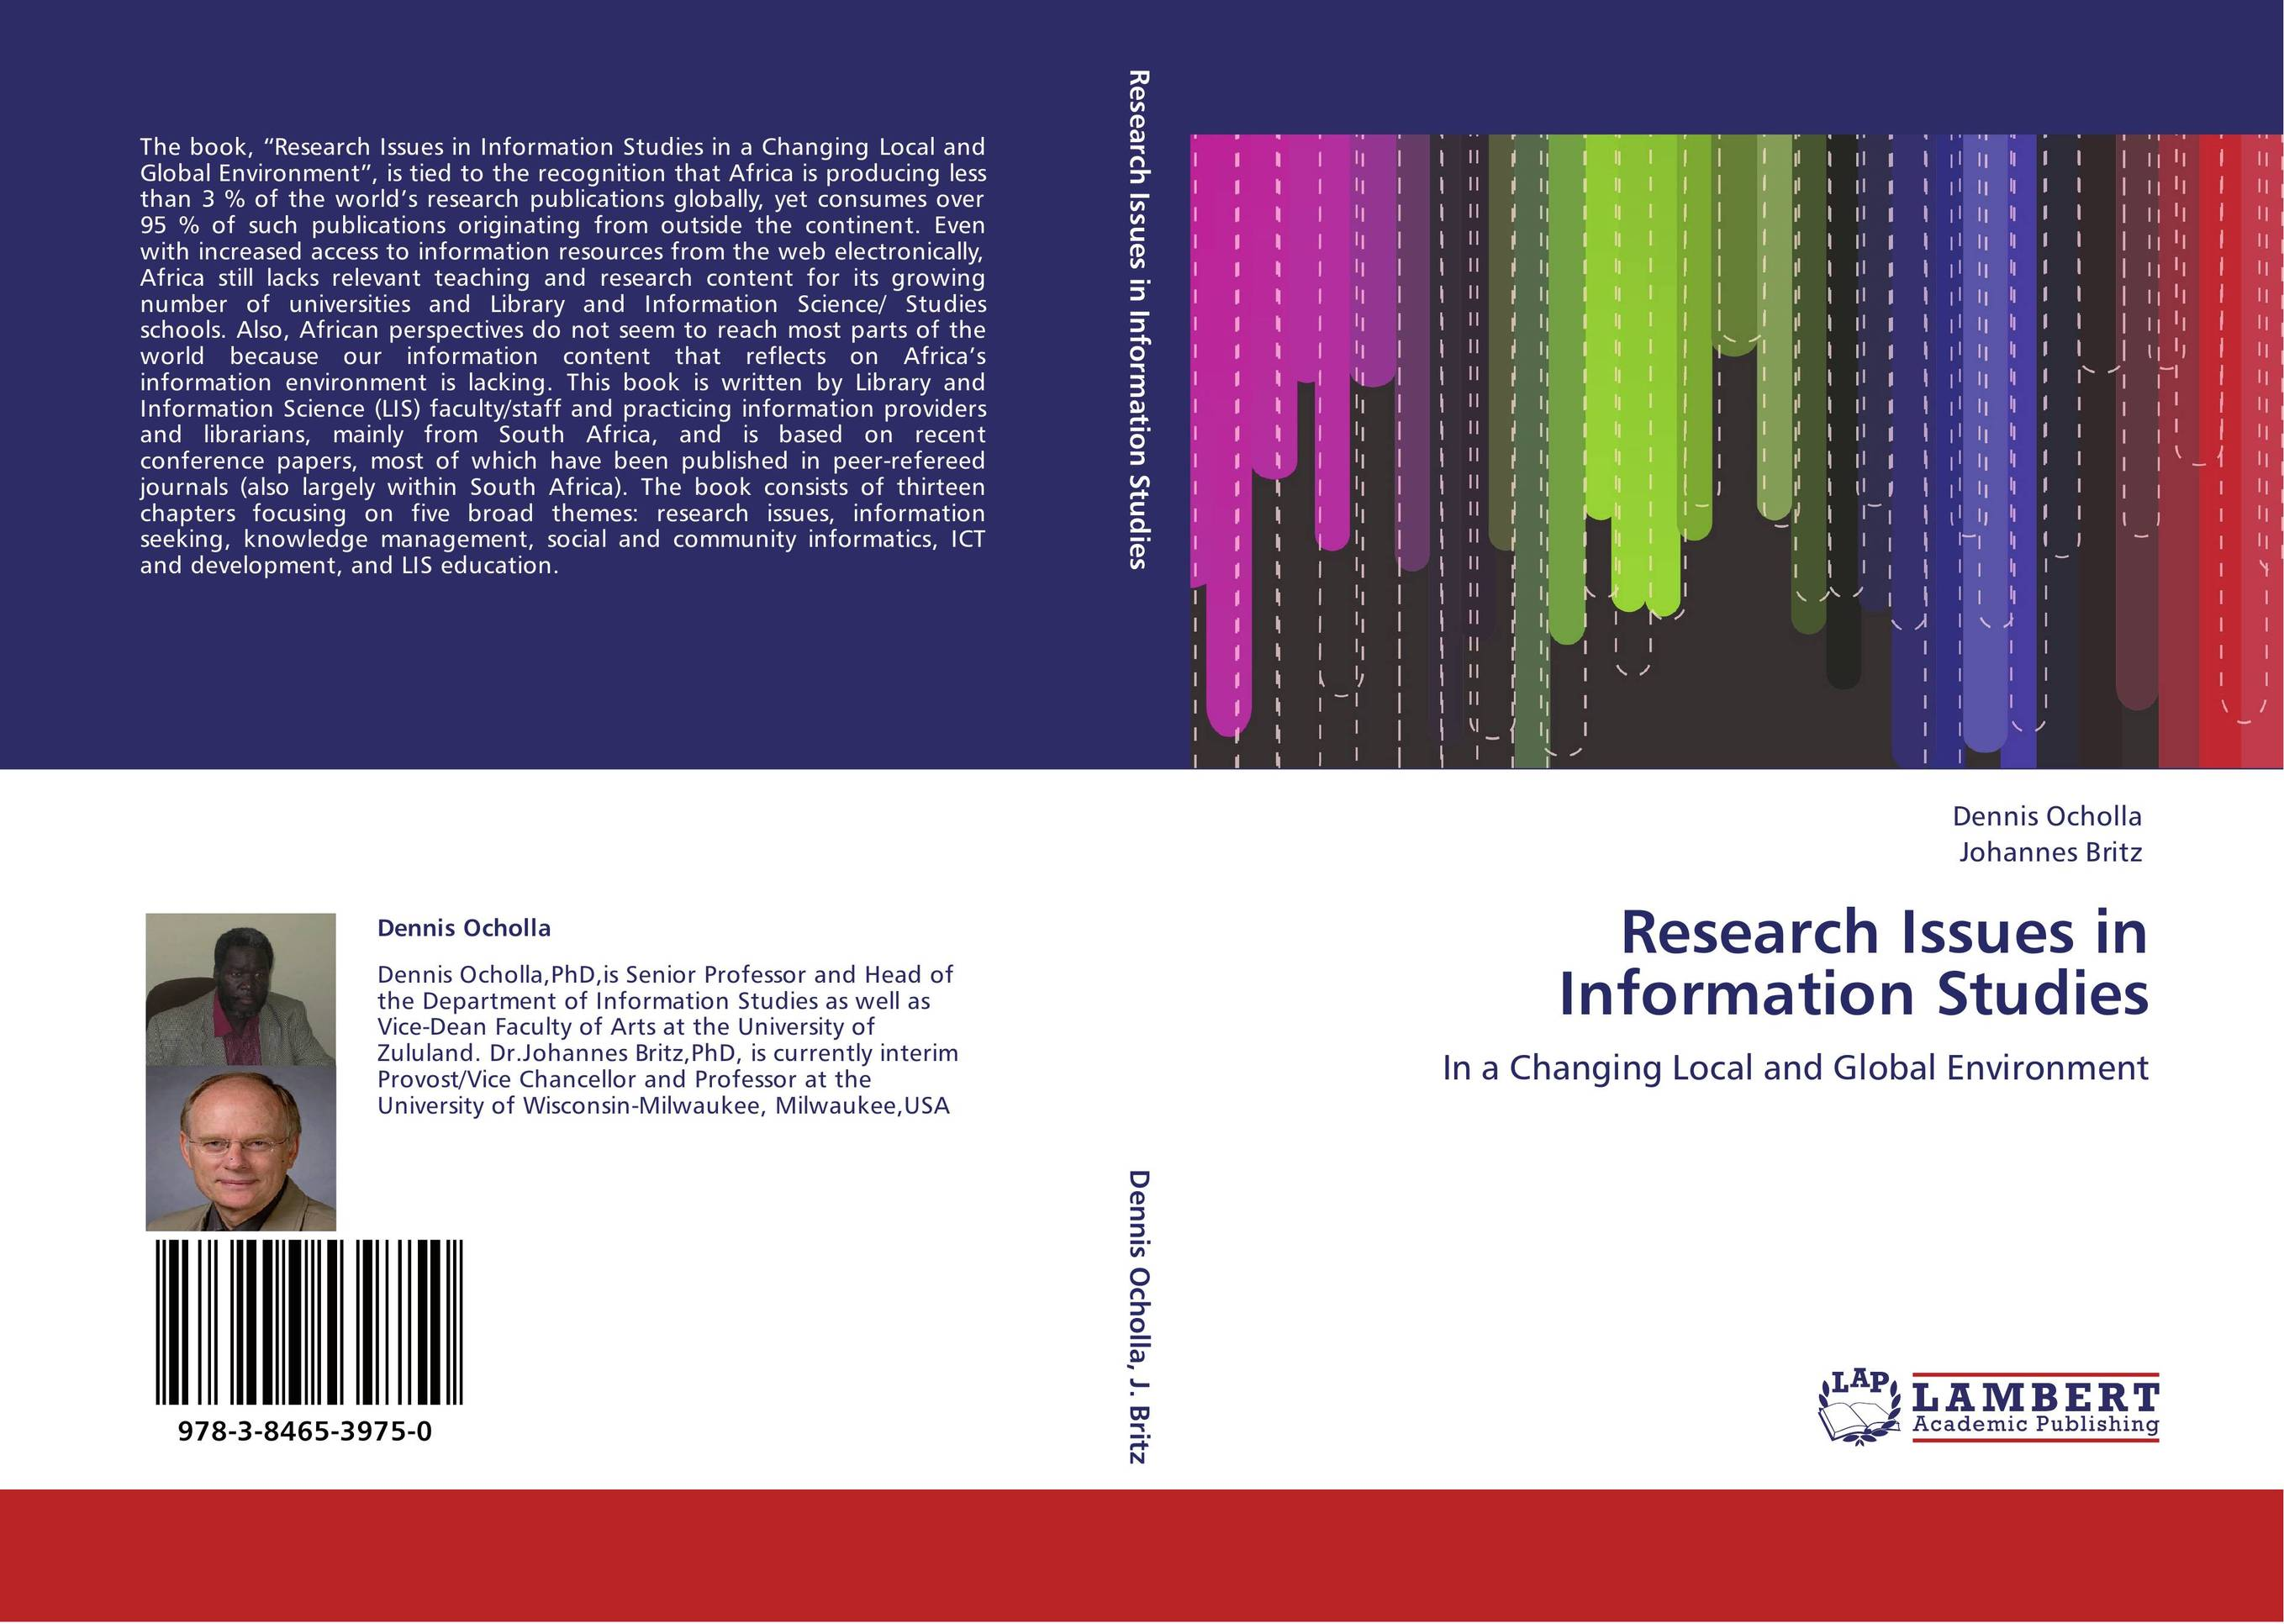 critical evaluation of relevant issues in e Evaluation is a systematic determination of a subject's merit, worth and significance, using criteria governed by a set of standardsit can assist an organization, program, project or any other intervention or initiative to assess any aim, realisable concept/proposal, or any alternative, to help in decision-making or to ascertain the degree of achievement or value in regard to the aim and.